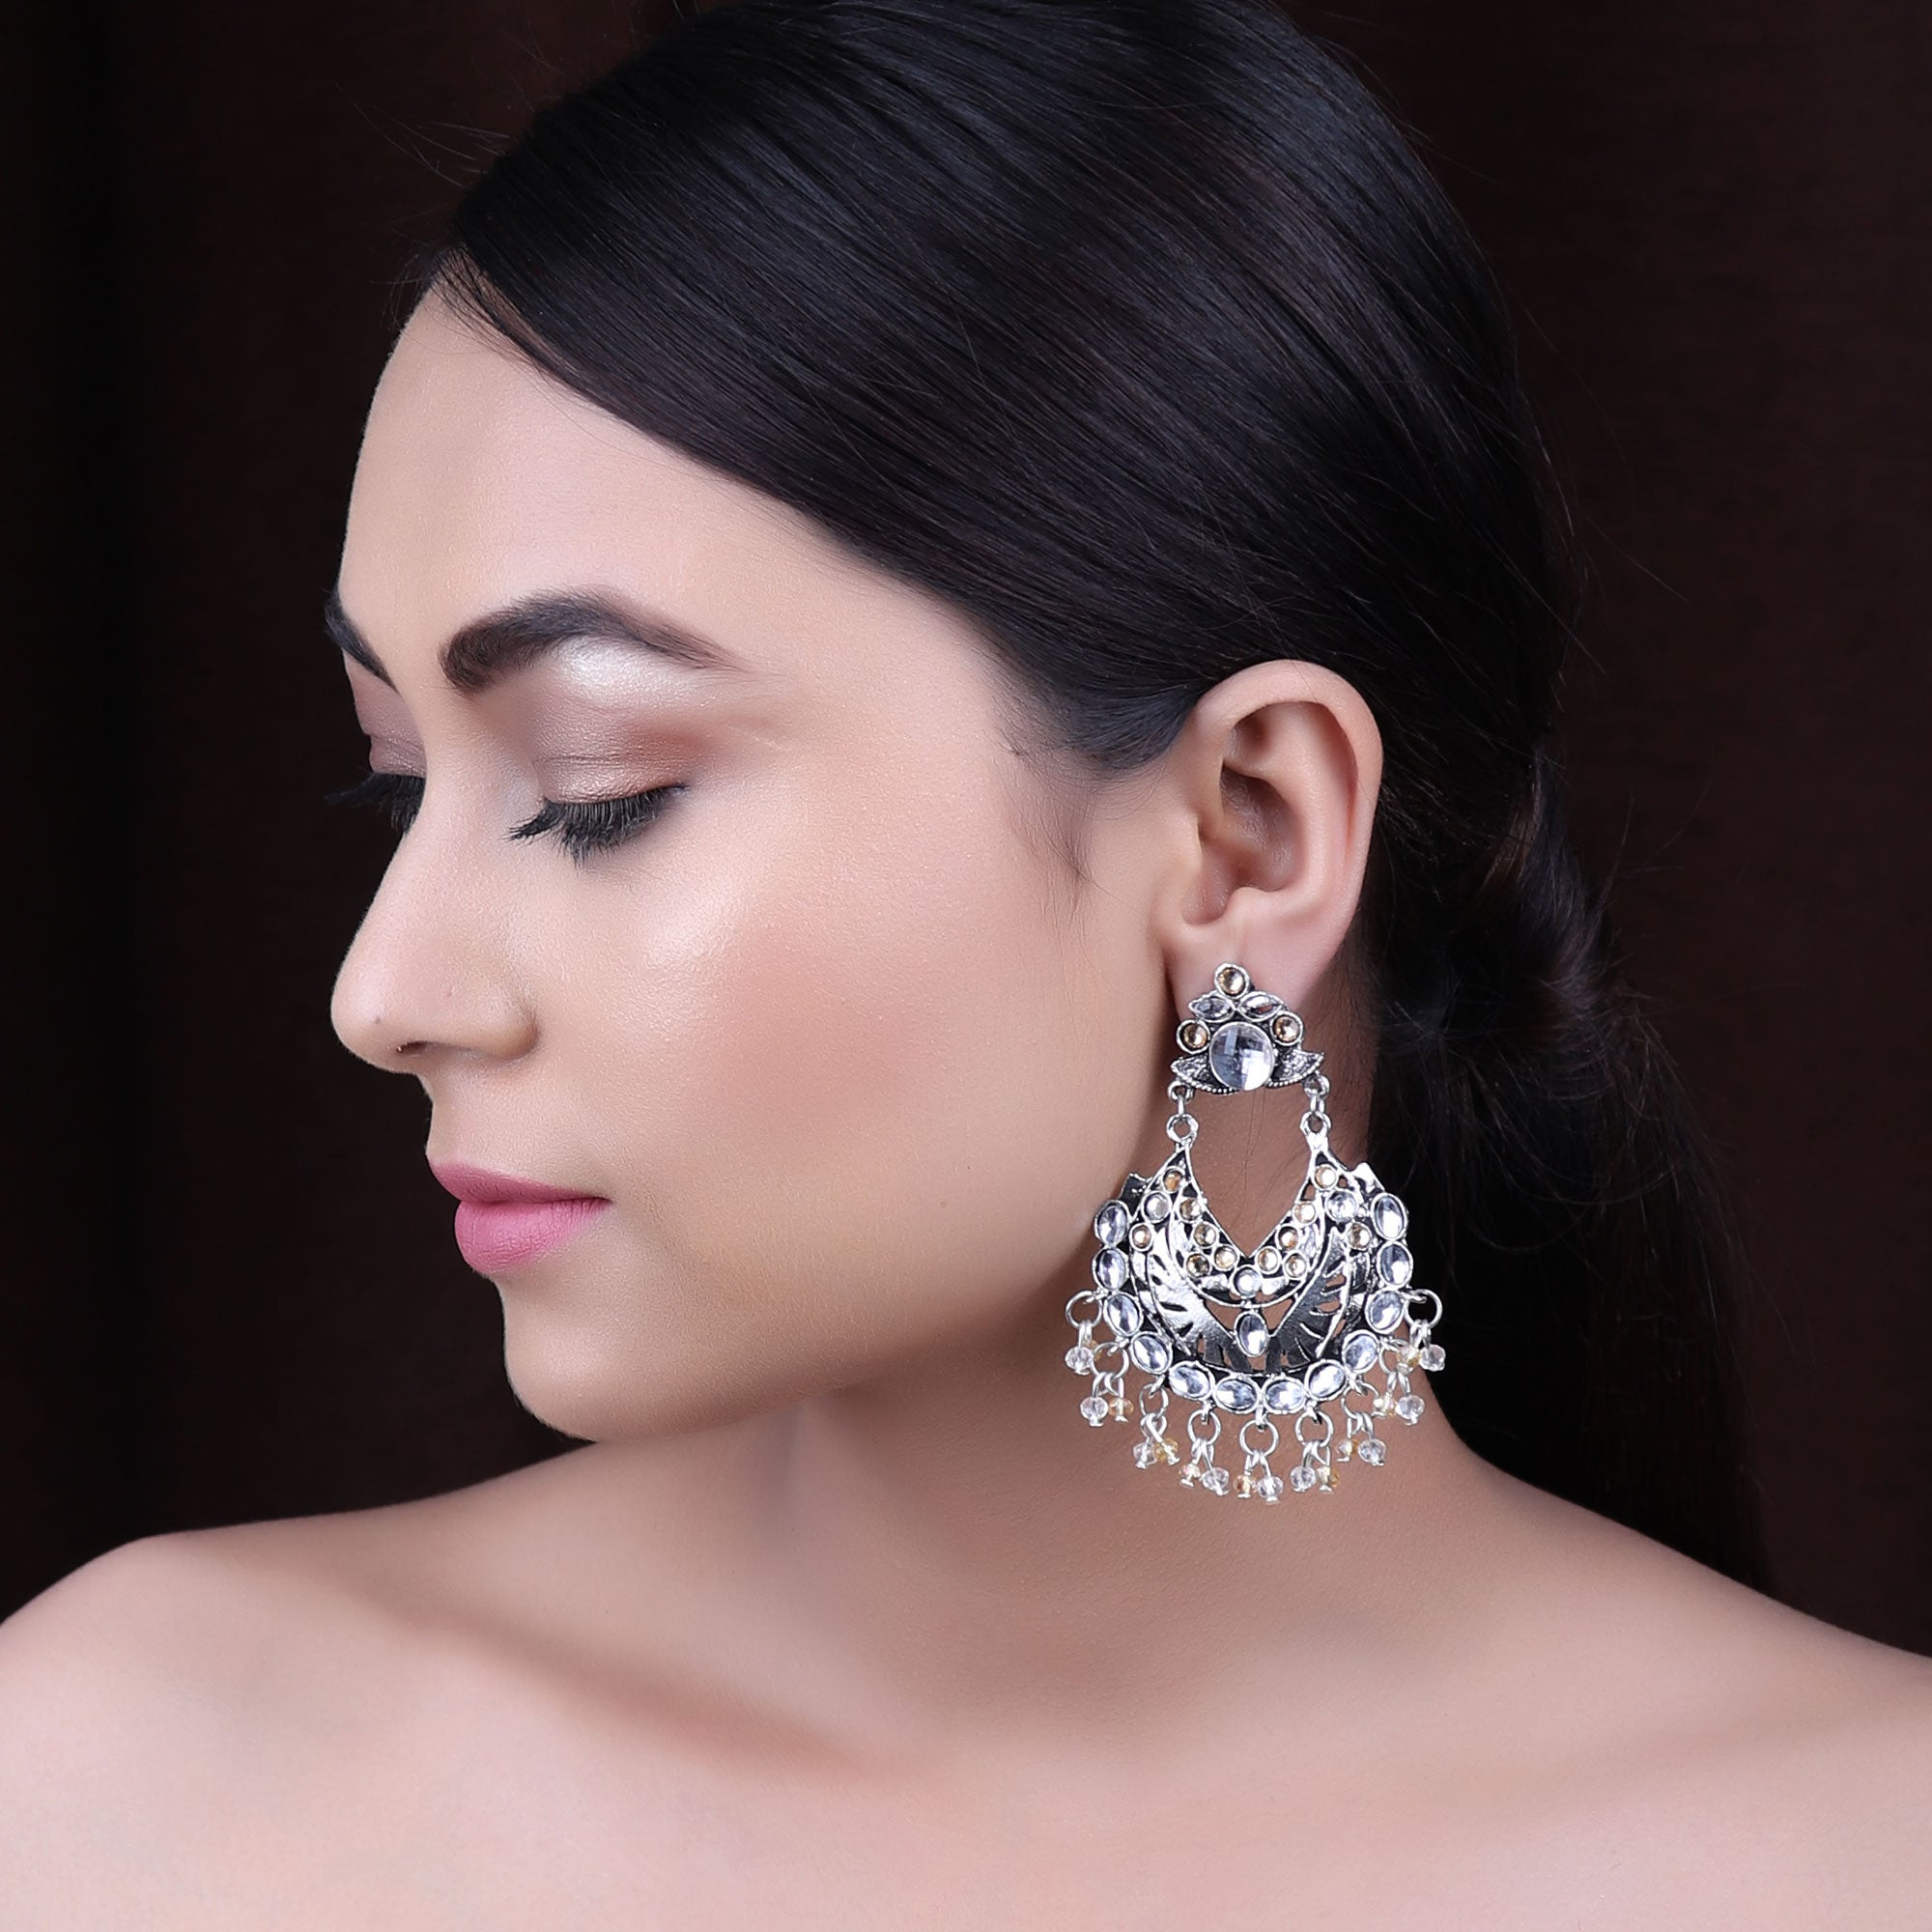 Earrings,The Vibrant Gleamy Pearl Earrings in White & Cream - Cippele Multi Store